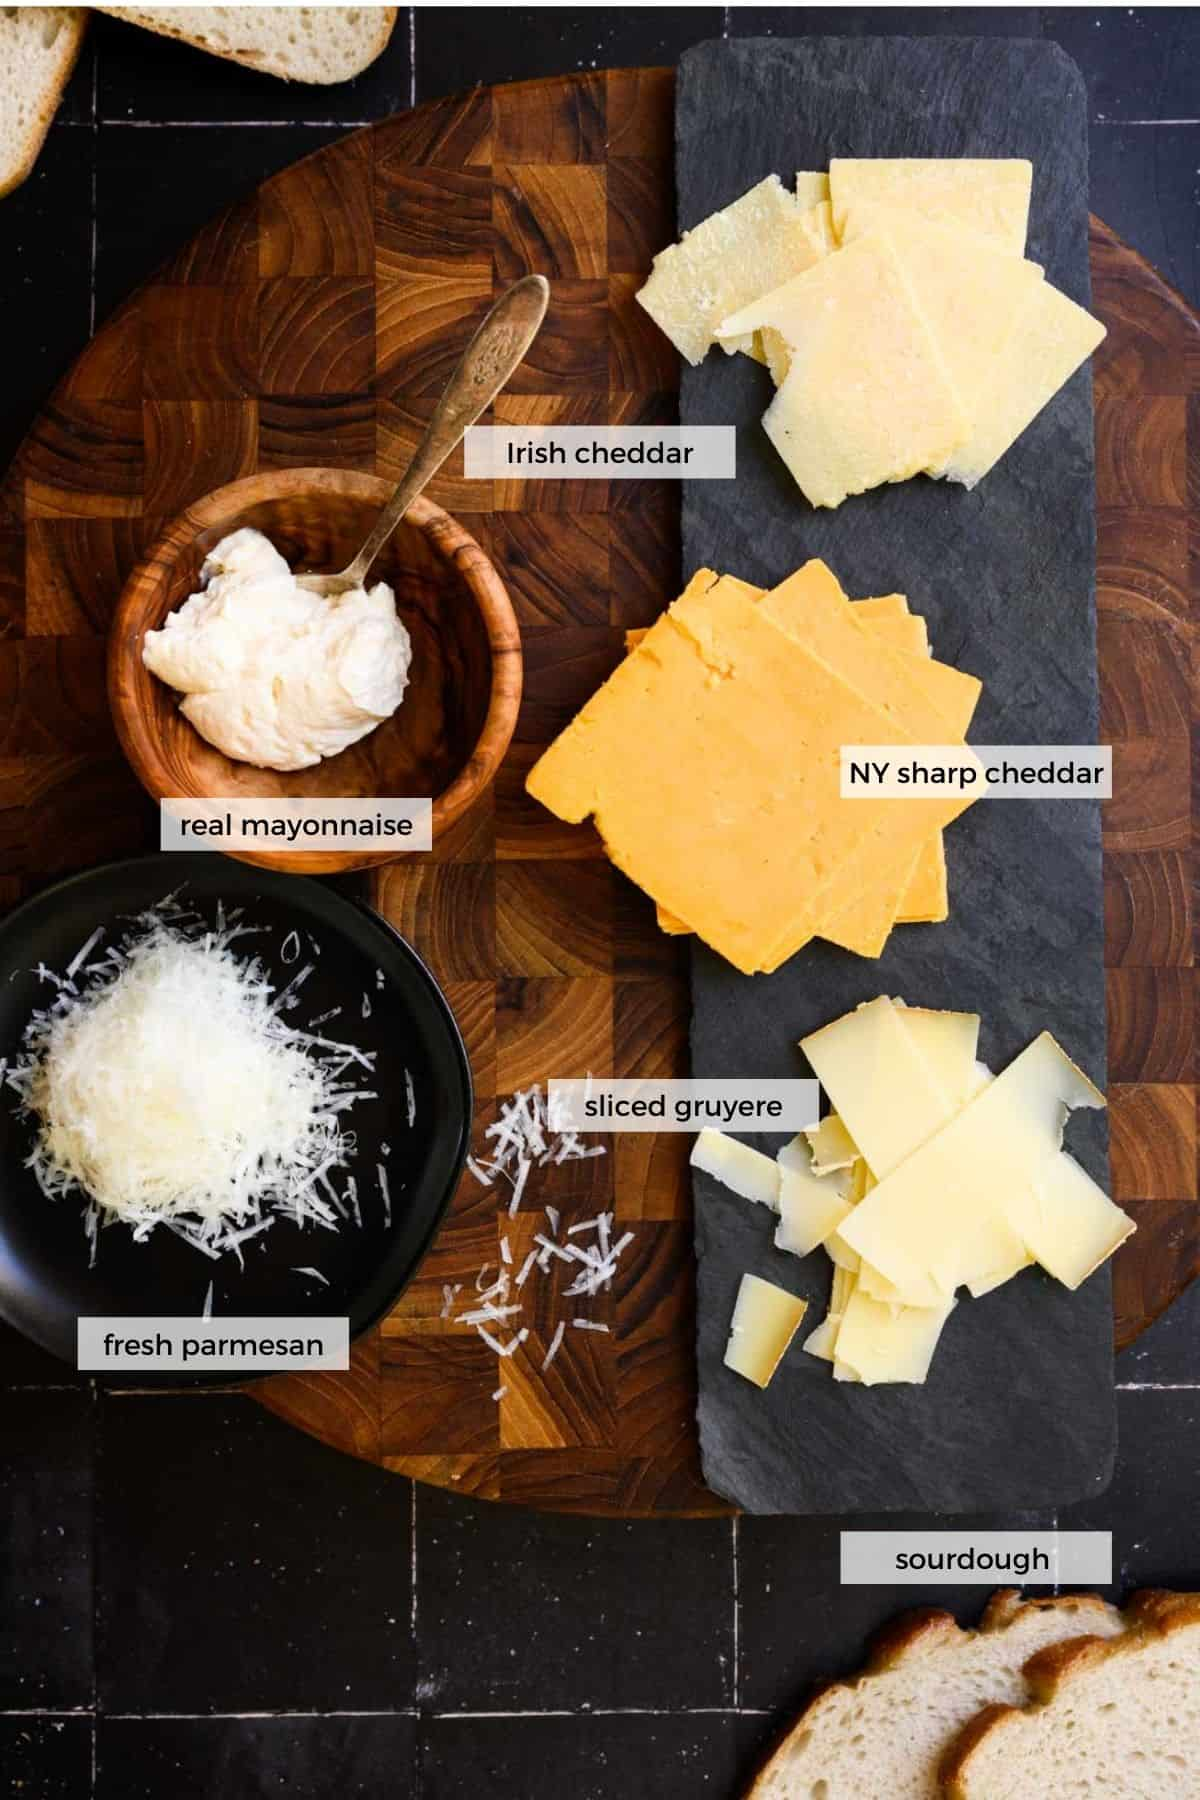 ingredients labeled to make a grilled cheese sandwich with parmesan.